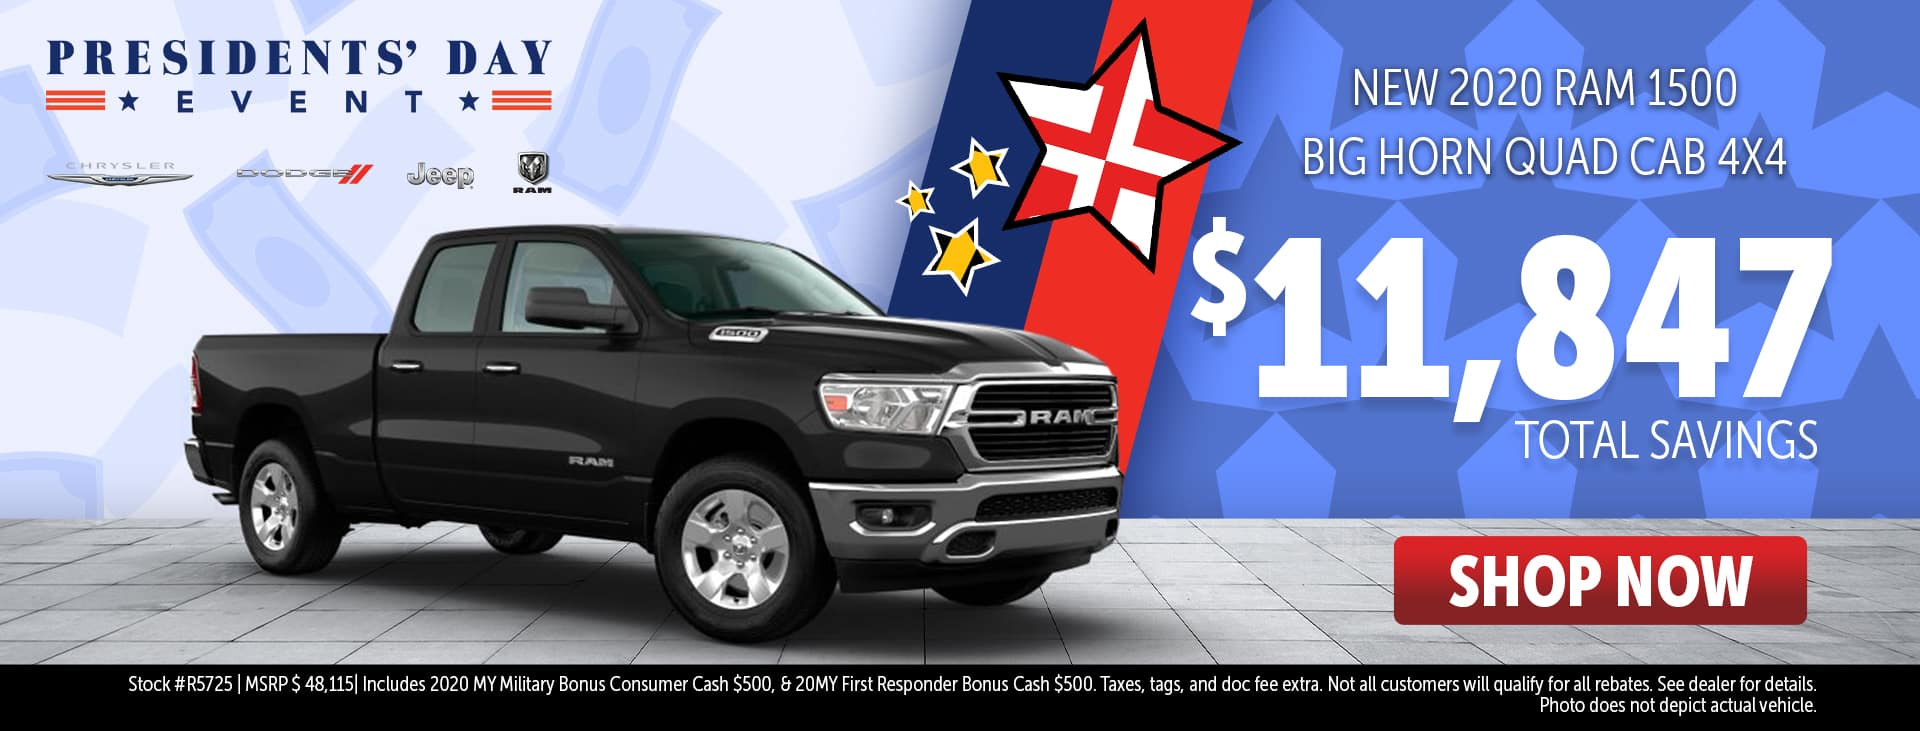 Presidents' Day Event Price for 2020 Ram 1500